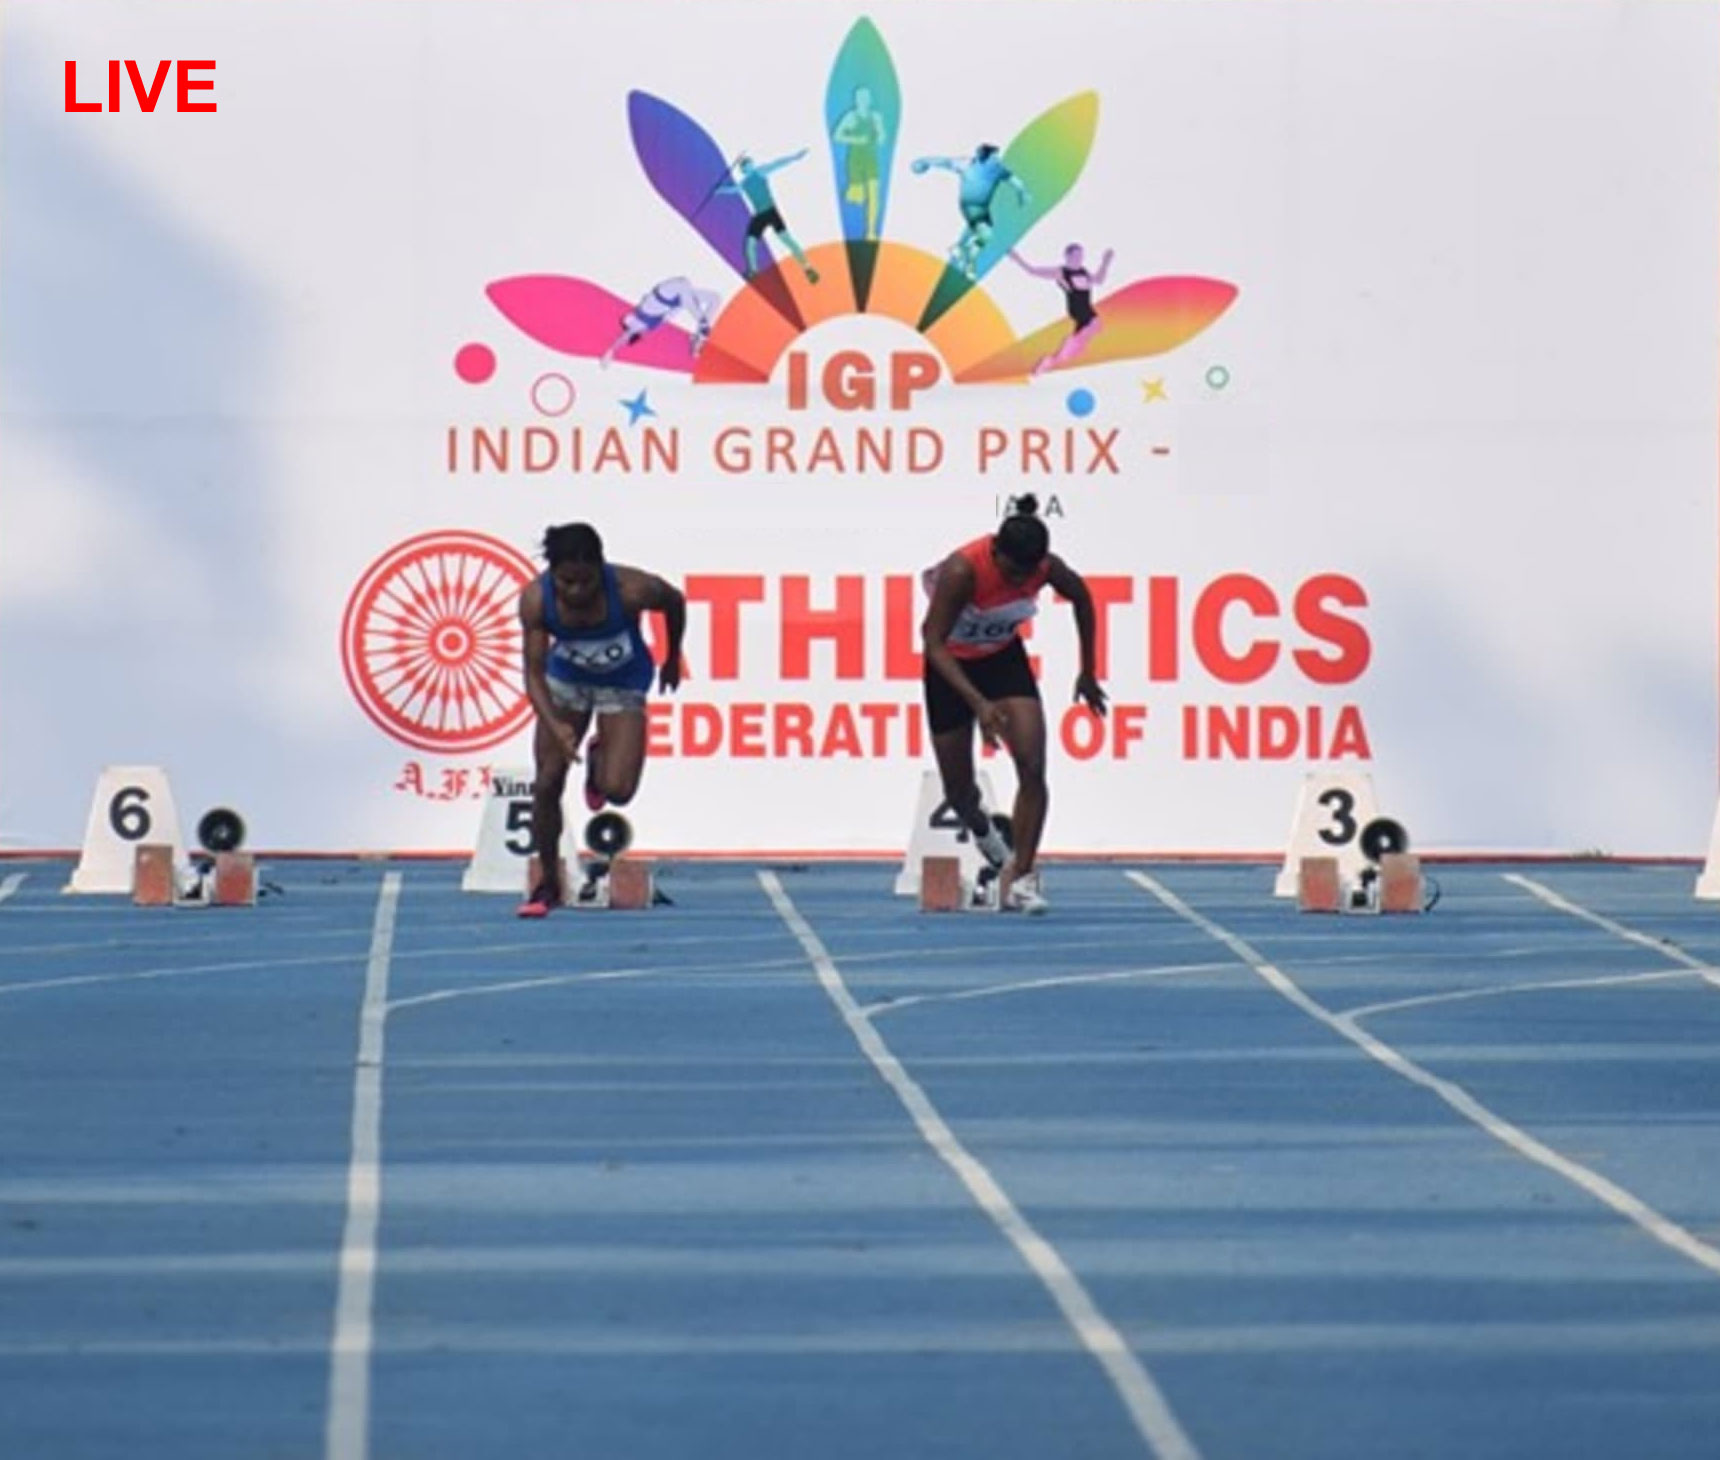 indian grand prix 2021 athletics